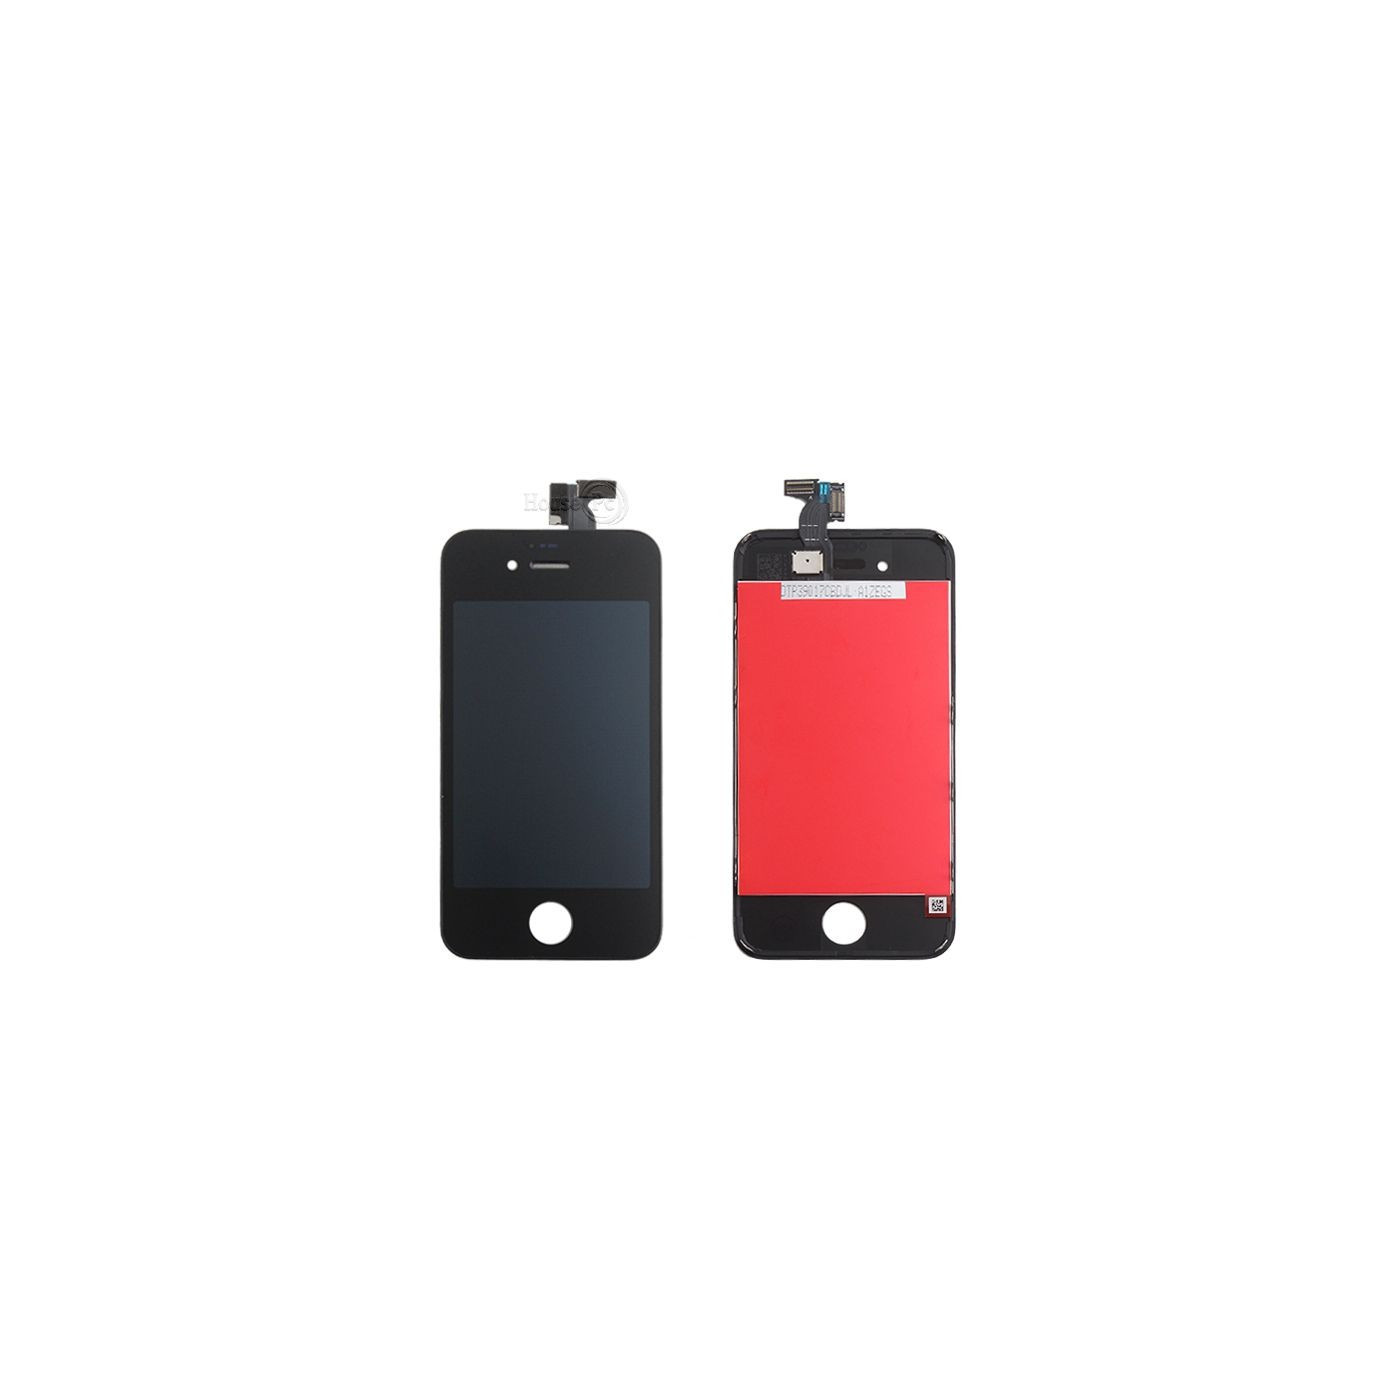 Touch screen + lcd + frame for apple iphone 4s black glass screen